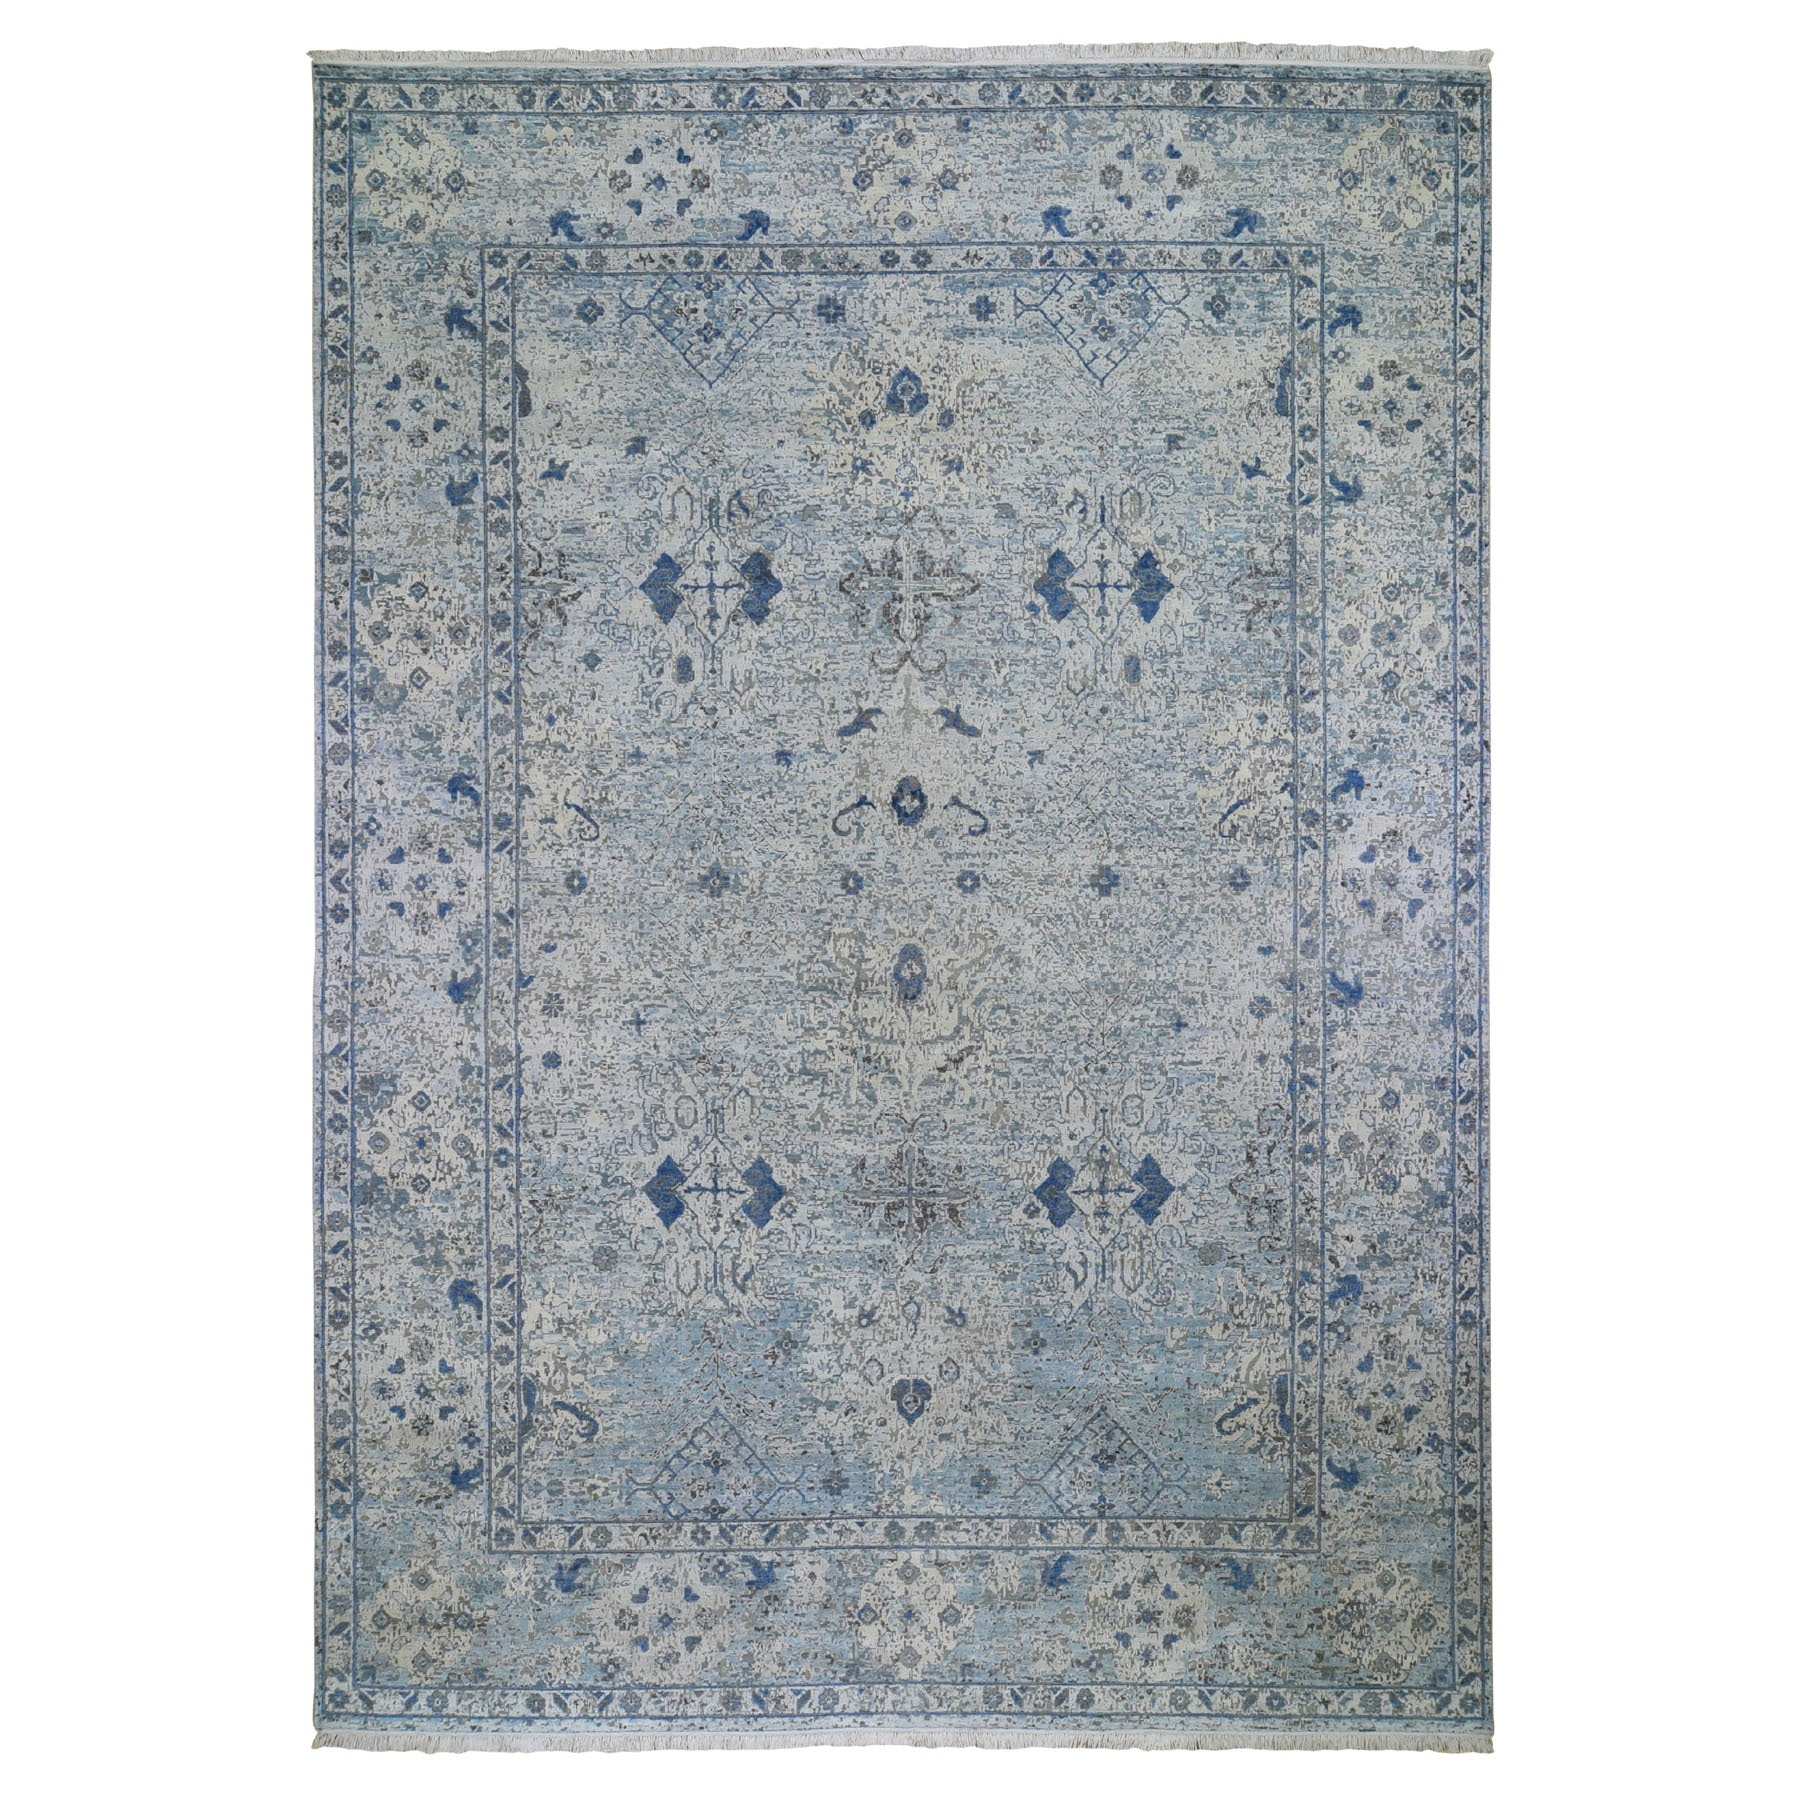 10'X14' Distressed Oushak Pure Silk With Textured Wool Hand-Knotted Oriental Rug moad9d0a